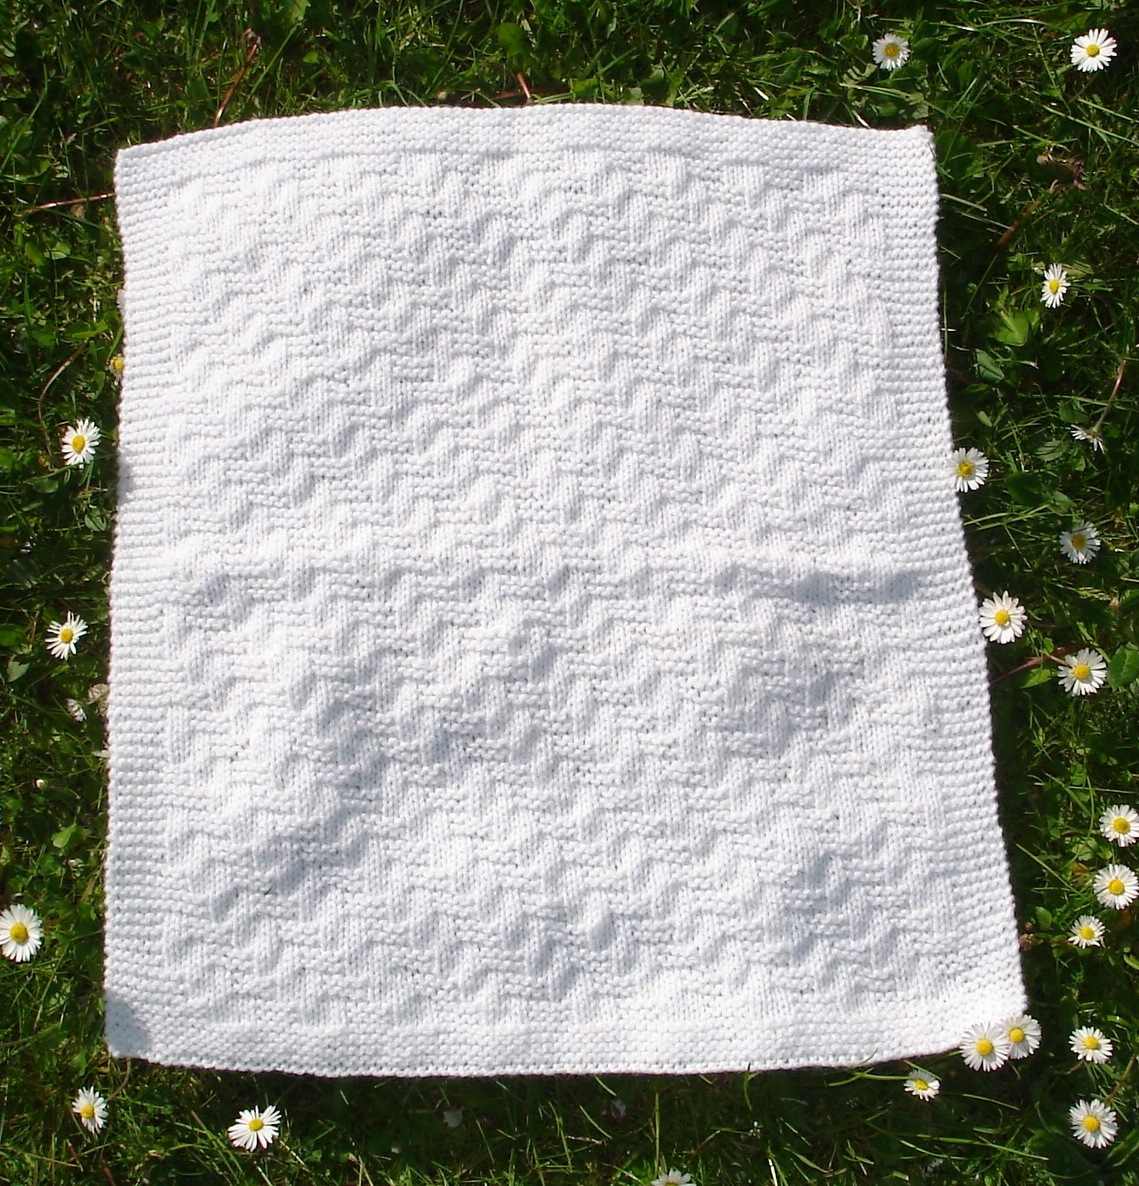 Knitting Pattern For Premature Baby Blanket : mariannas lazy daisy days: Premature Baby Blankets